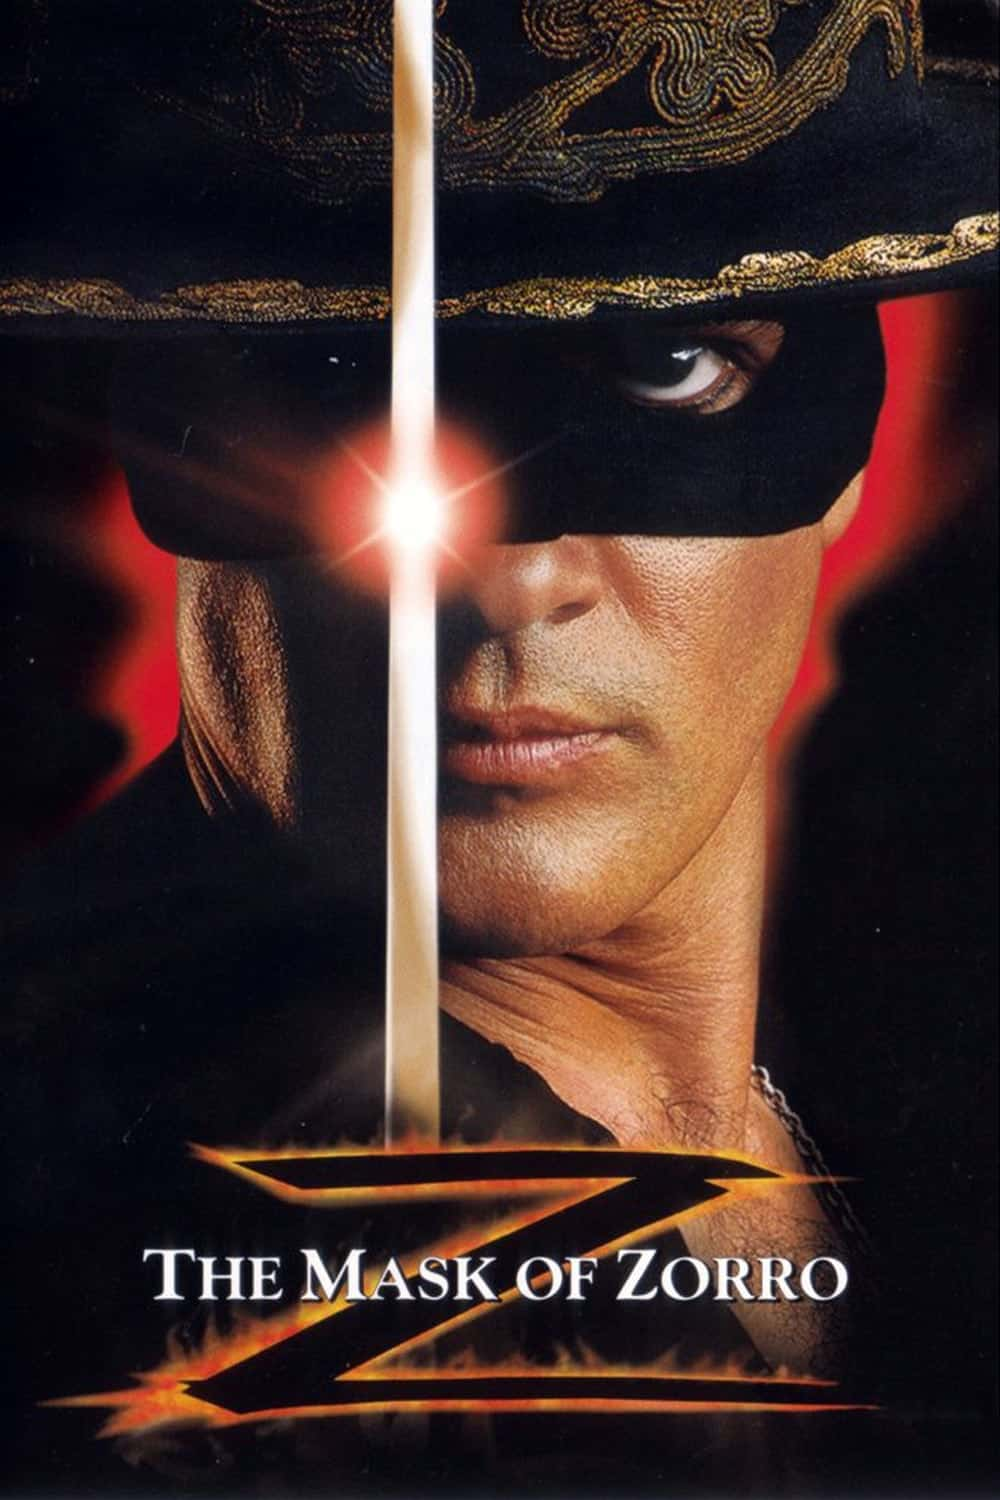 The Mask of Zorro, 1998